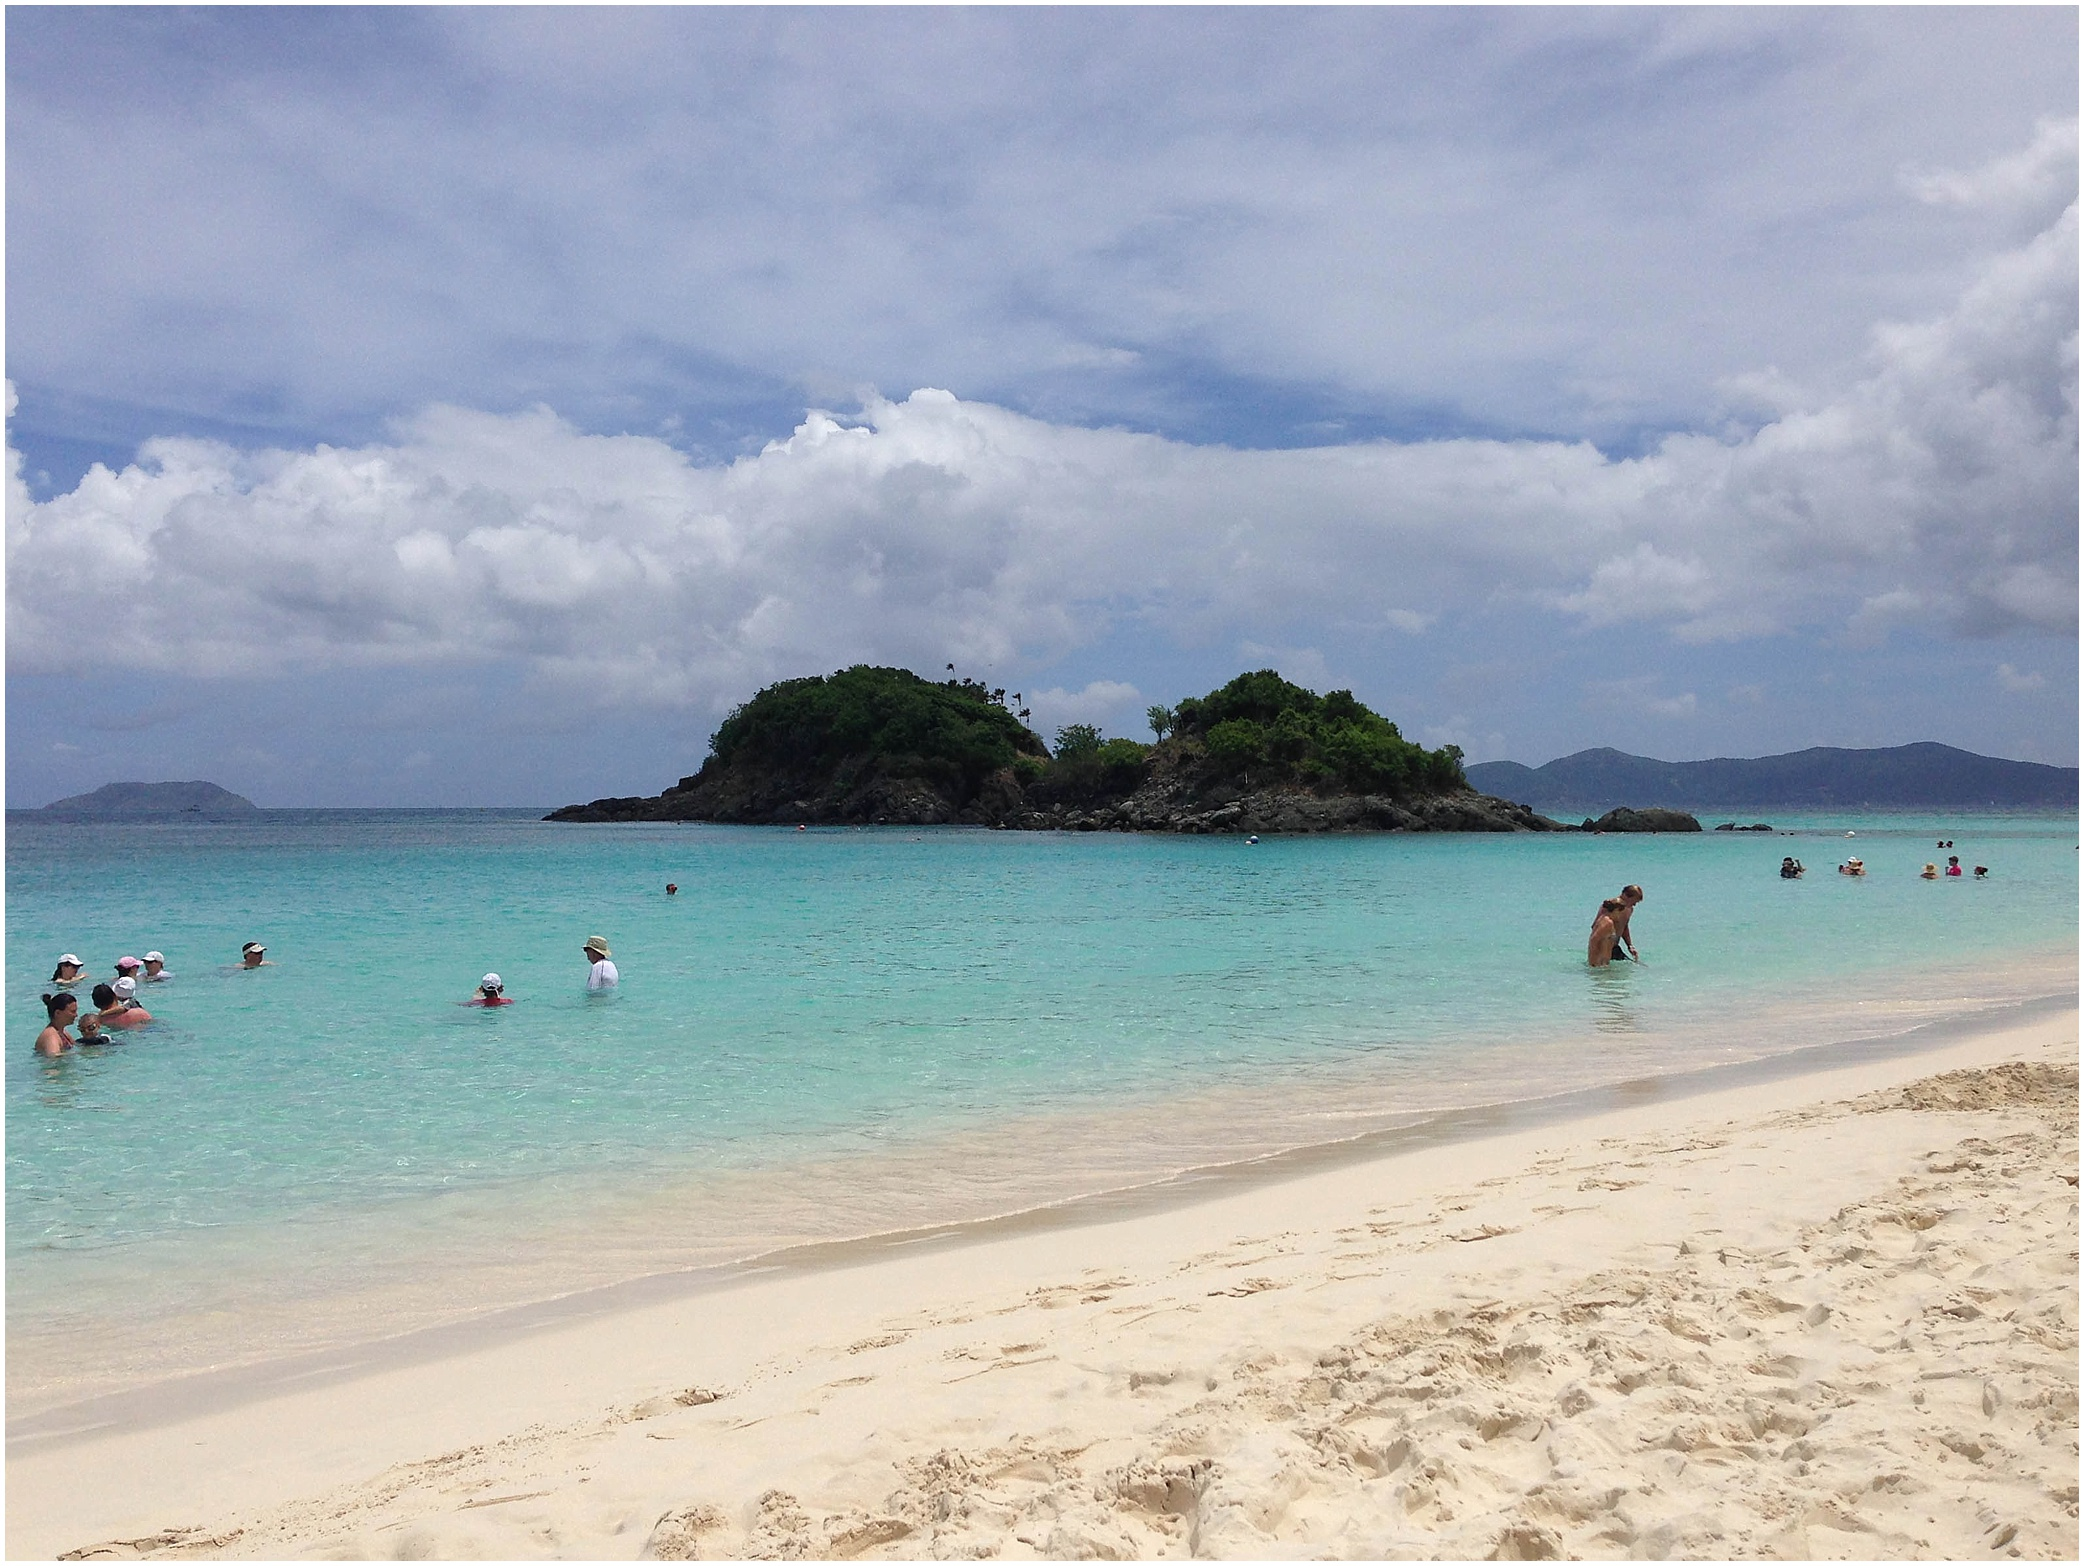 Trunk Bay! All around that island there is a snorkeling trail...this beach was much more crowded than Cinnamon Bay! Thisis also a popular excursion placefor people on cruises. They dock in St. Thomas and come over to Trunk Bay on St. John for snorkeling!